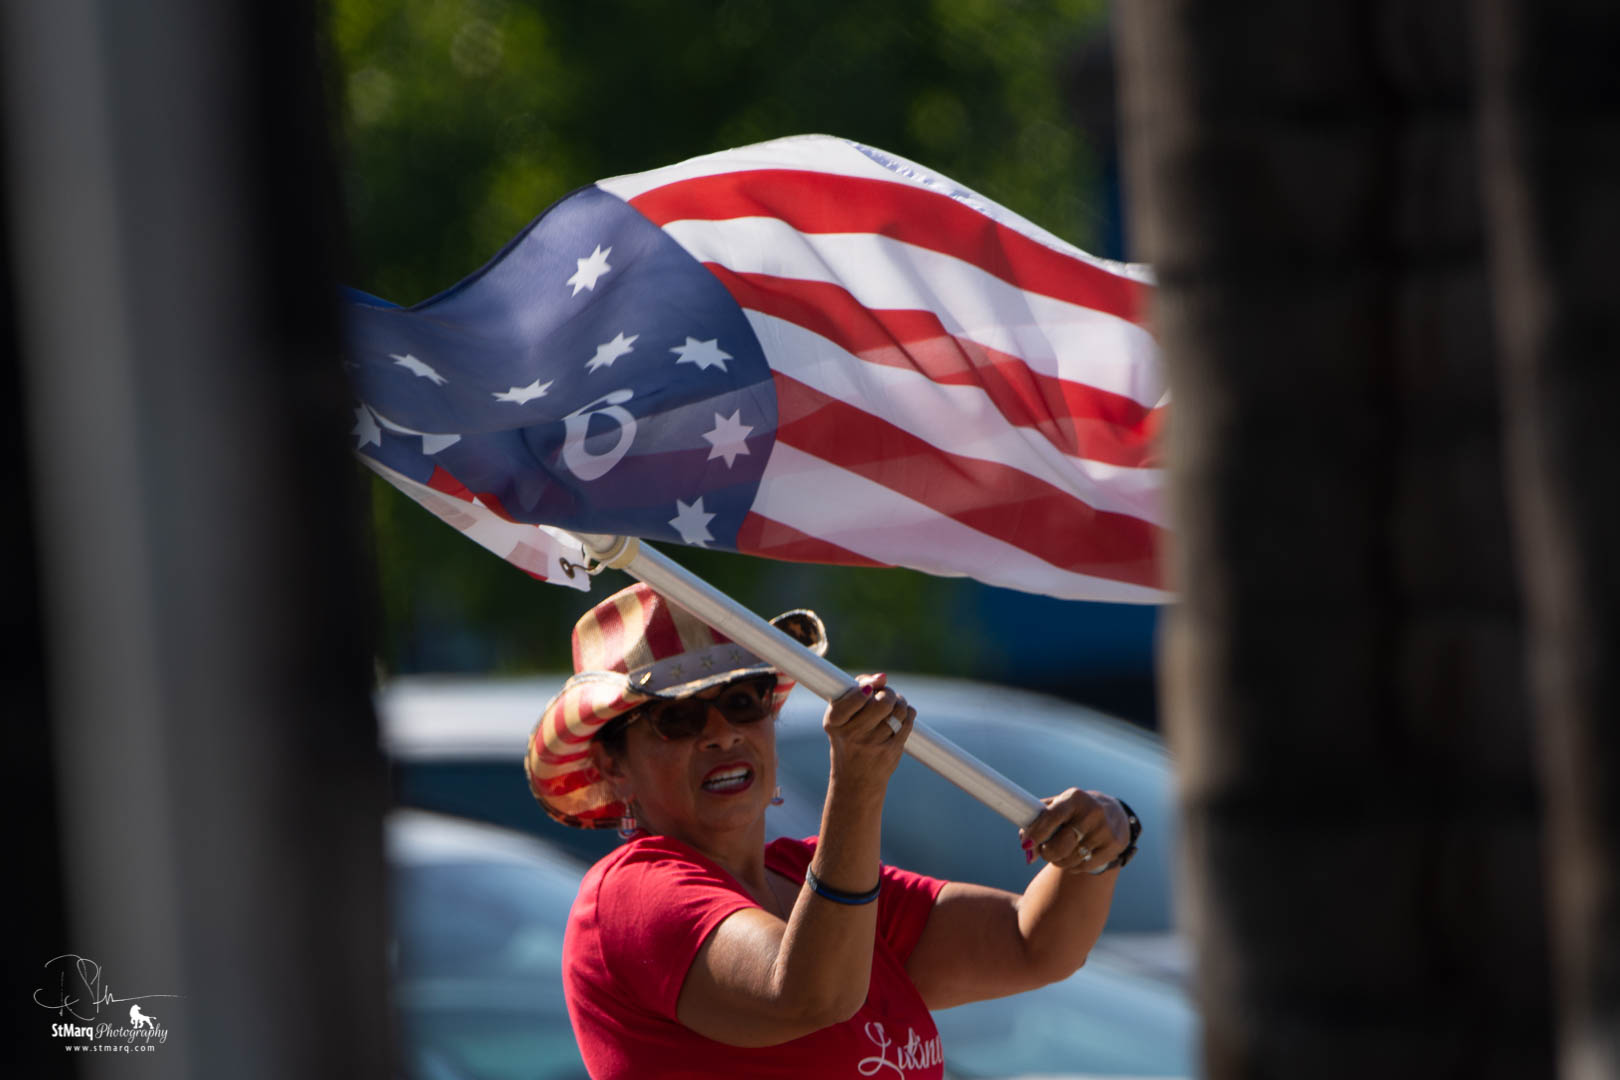 Marilyn Castillo waves the American flag at a Rally in support of President Trump.